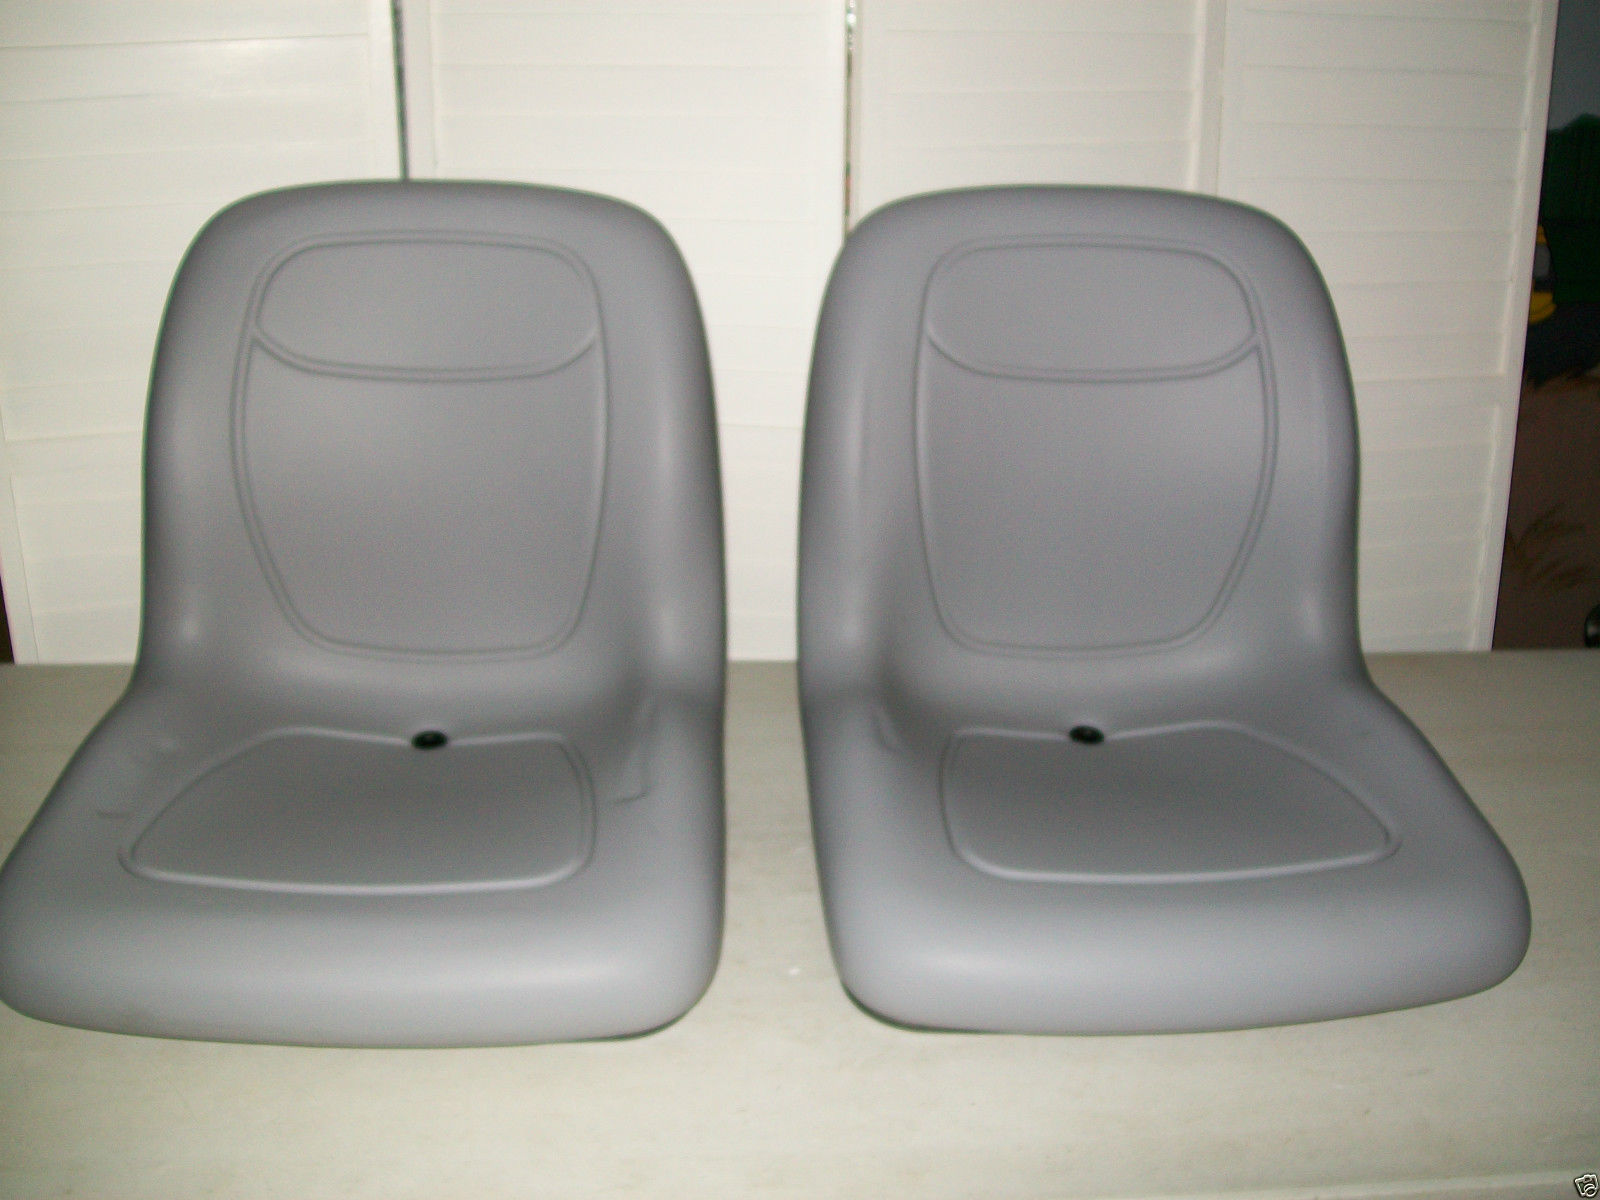 John Deere Seat Covers For Trucks : Seat covers for john deere gator velcromag